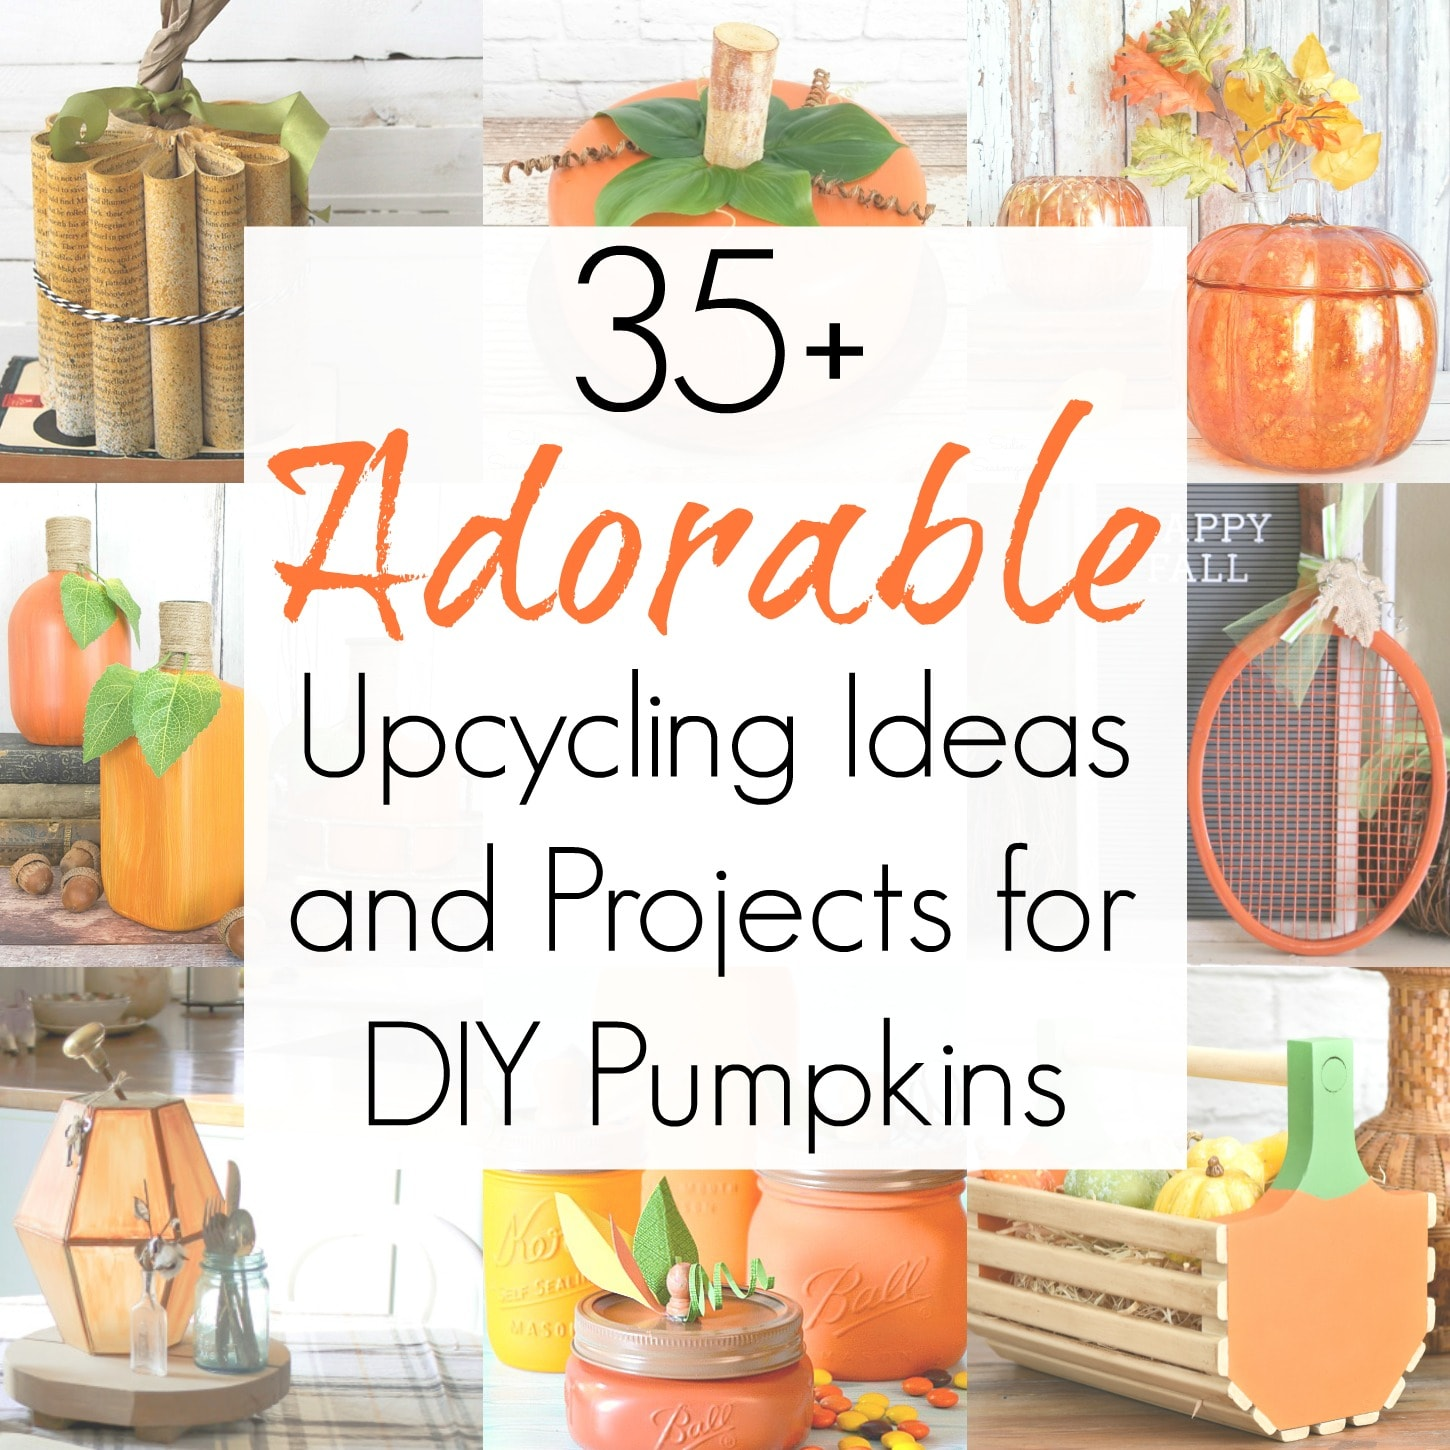 35+ Upcycling Ideas and Projects for Fall Pumpkin Decorations